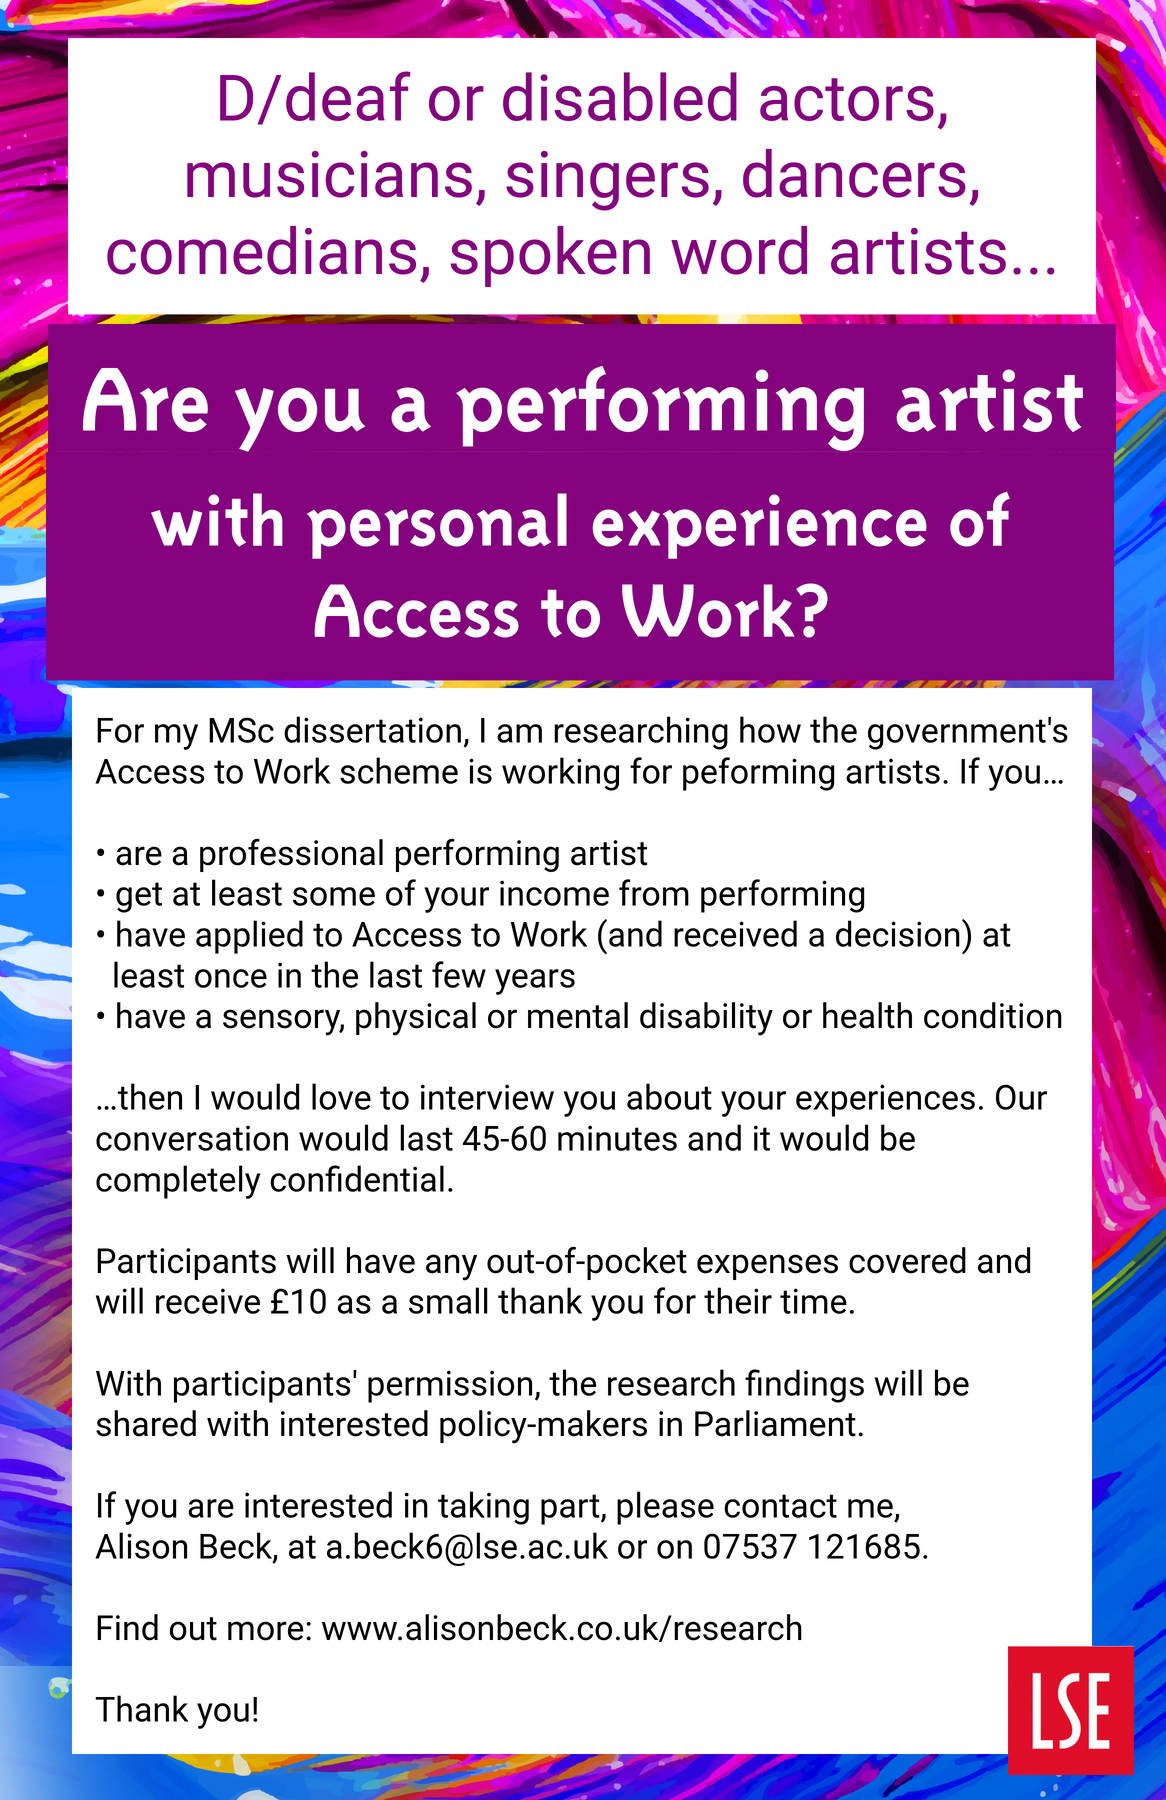 Performing artists and Access to Work - research flyer.jpg